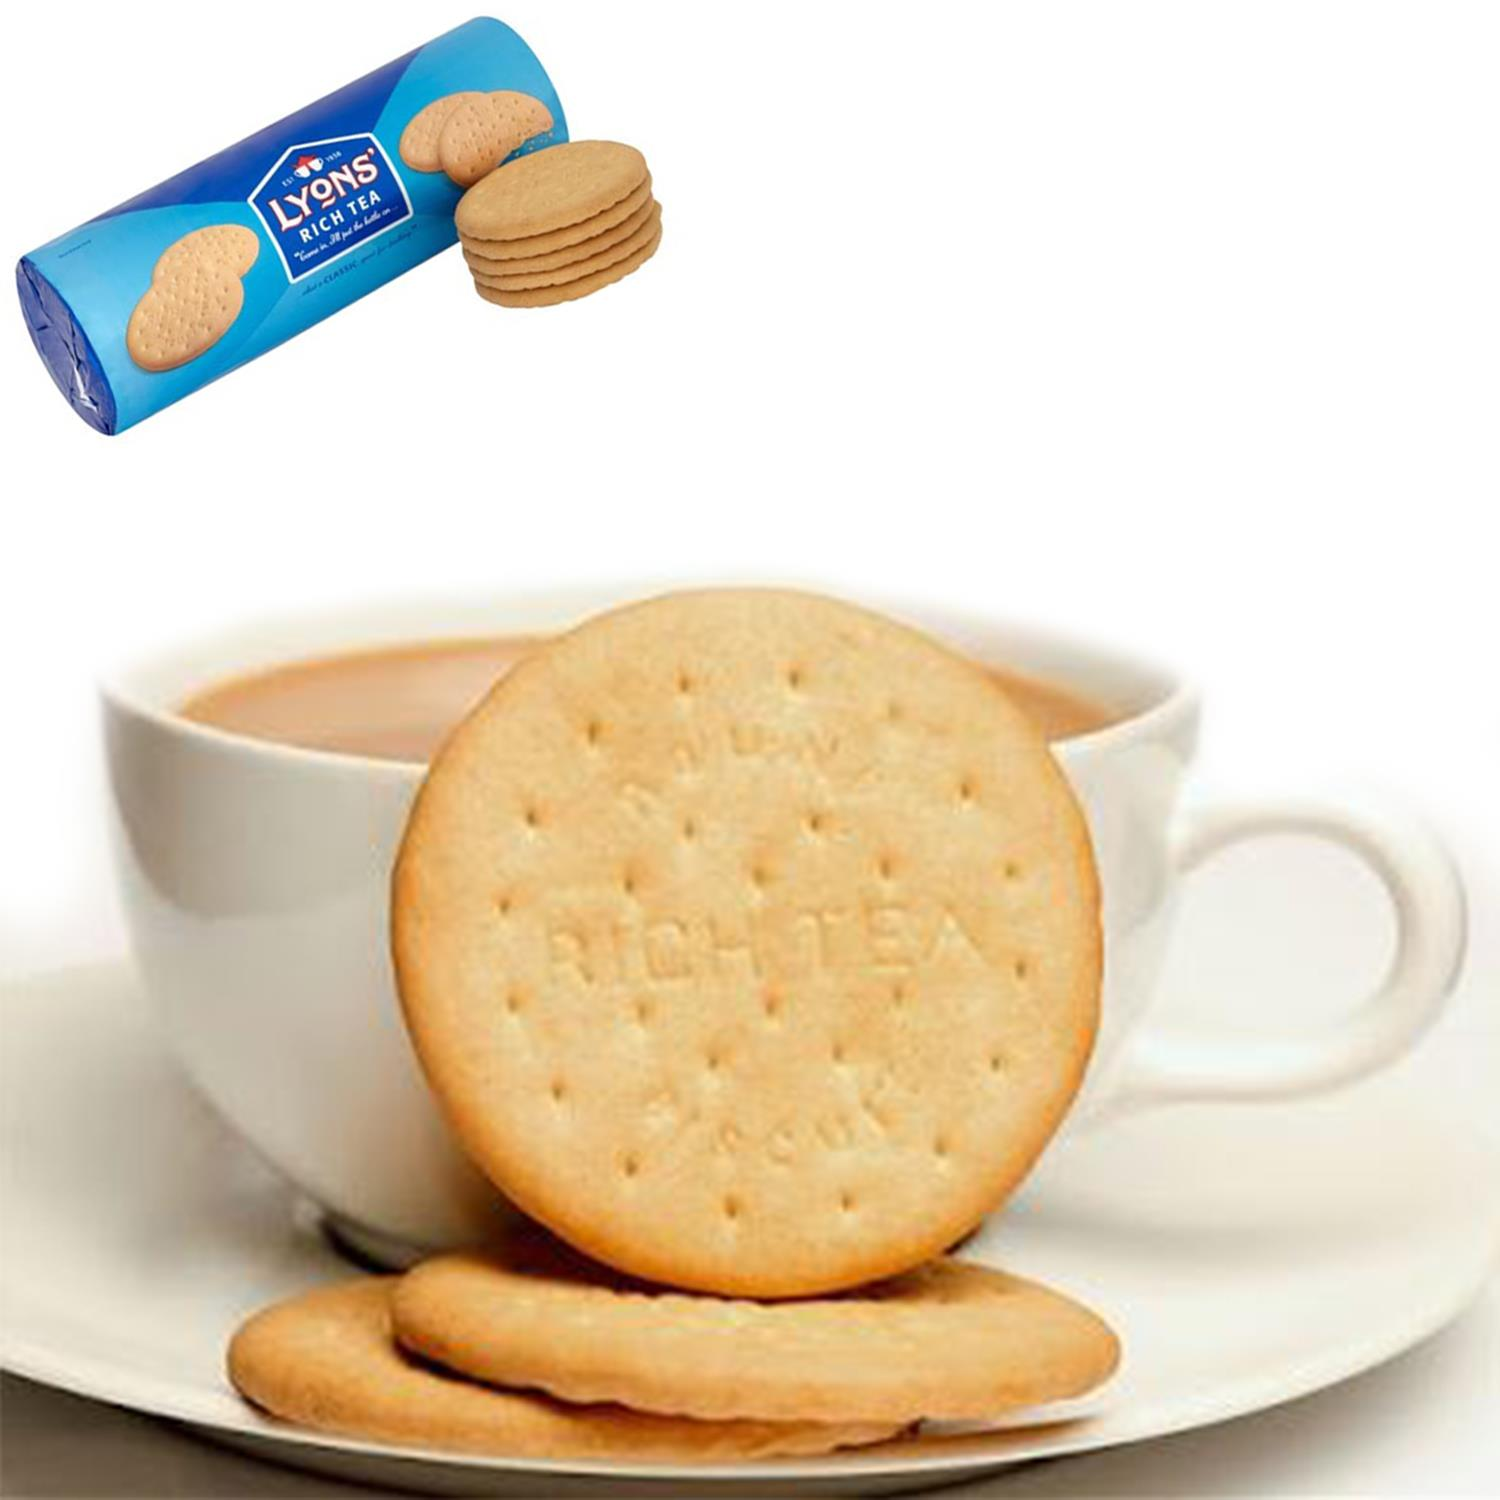 thumbnail 30 - Lyons Rich Tea Biscuits 300g, Great for a morning or afternoon snack